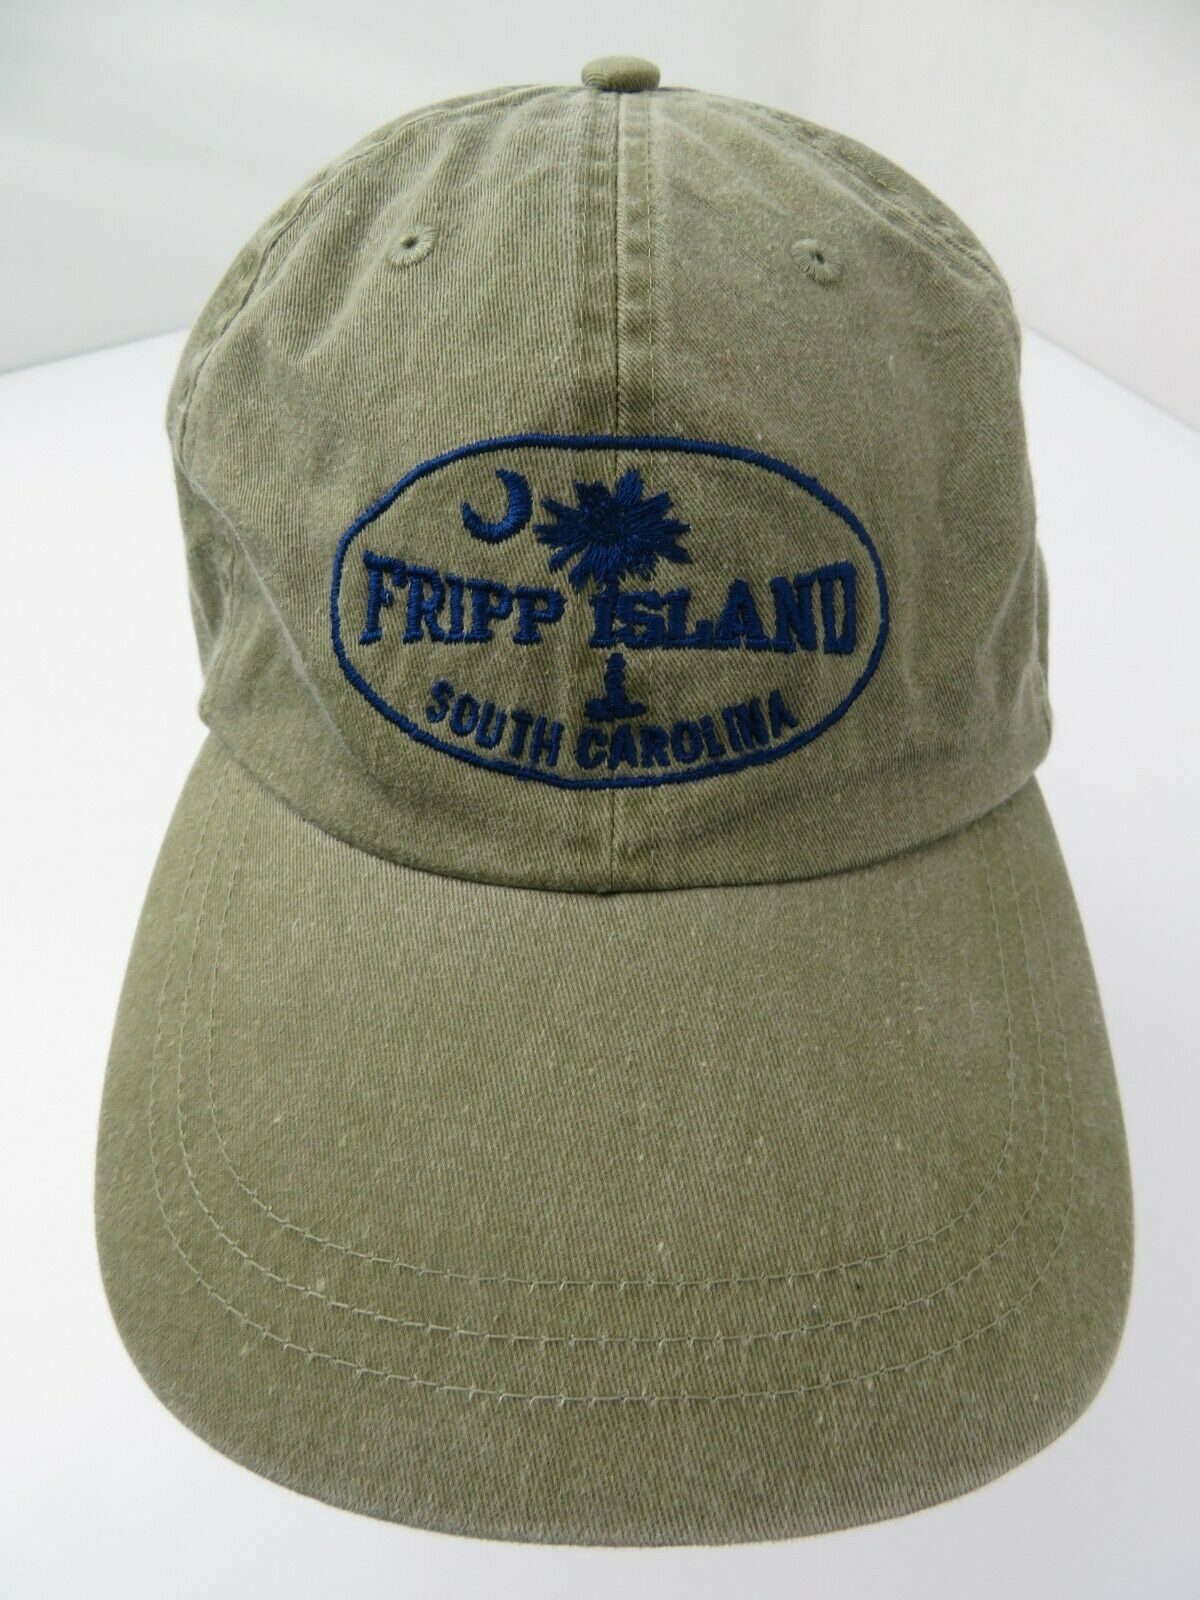 Primary image for Fripp Island South Carolina Adjustable Adult Cap Hat